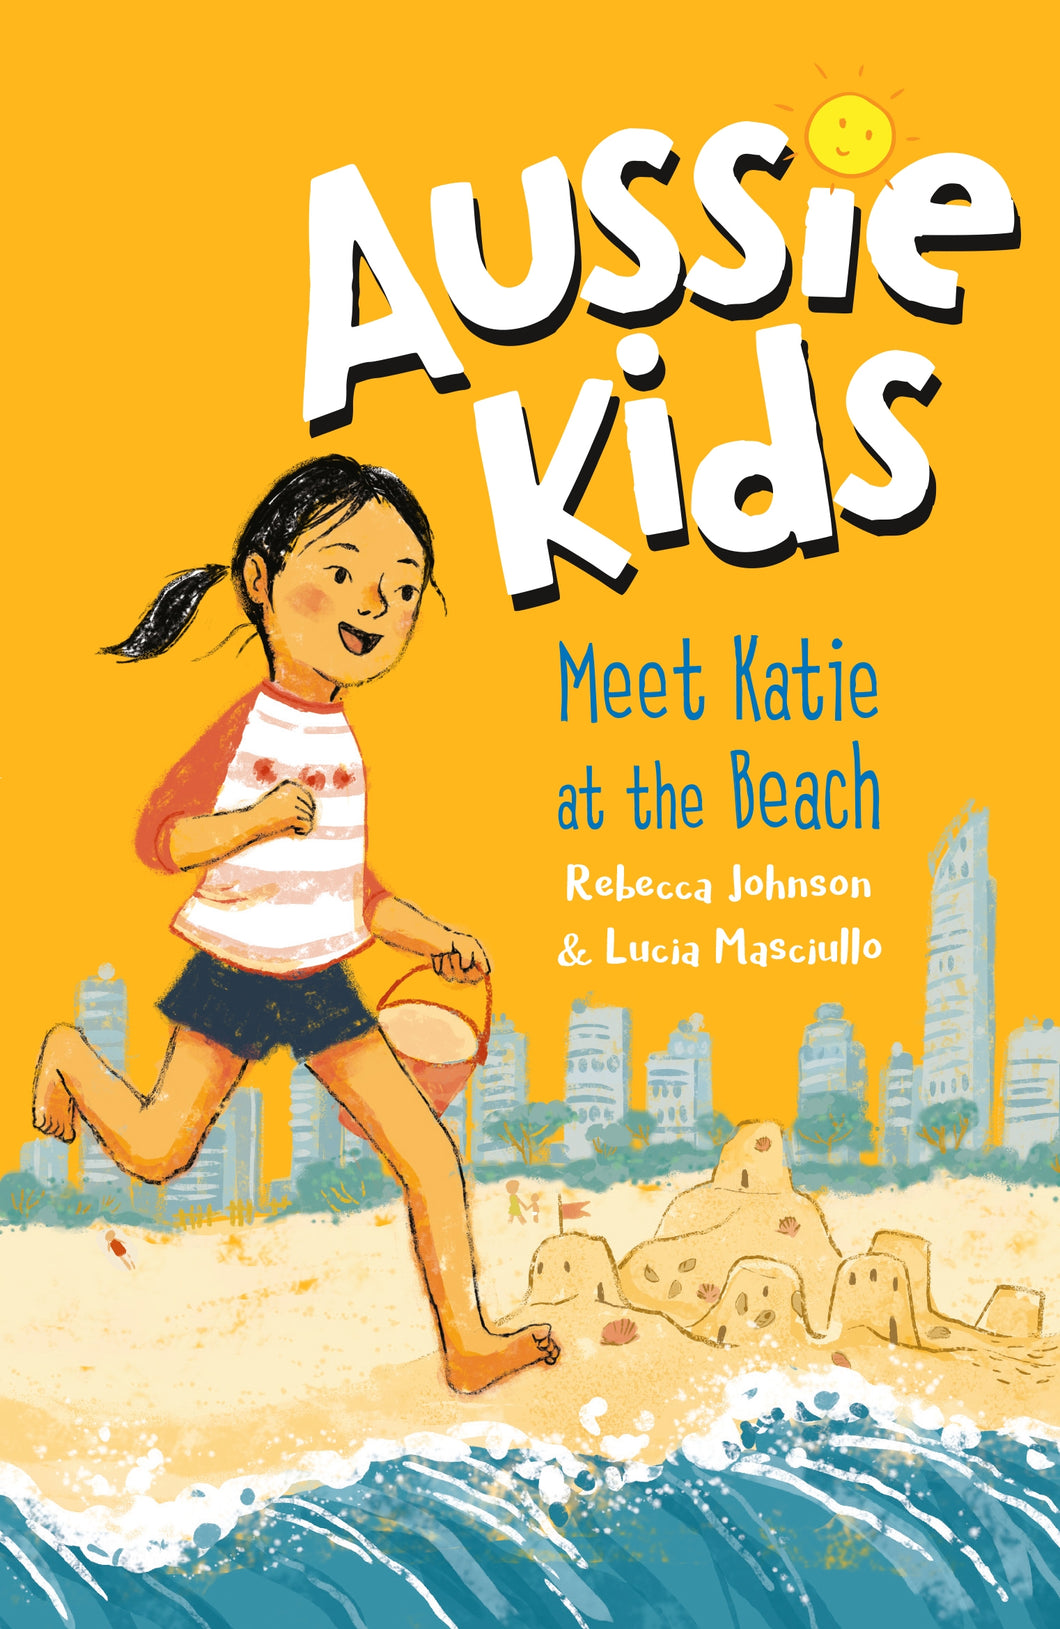 Aussie Kids: Meet Katie at the Beach by Rebecca Johnson